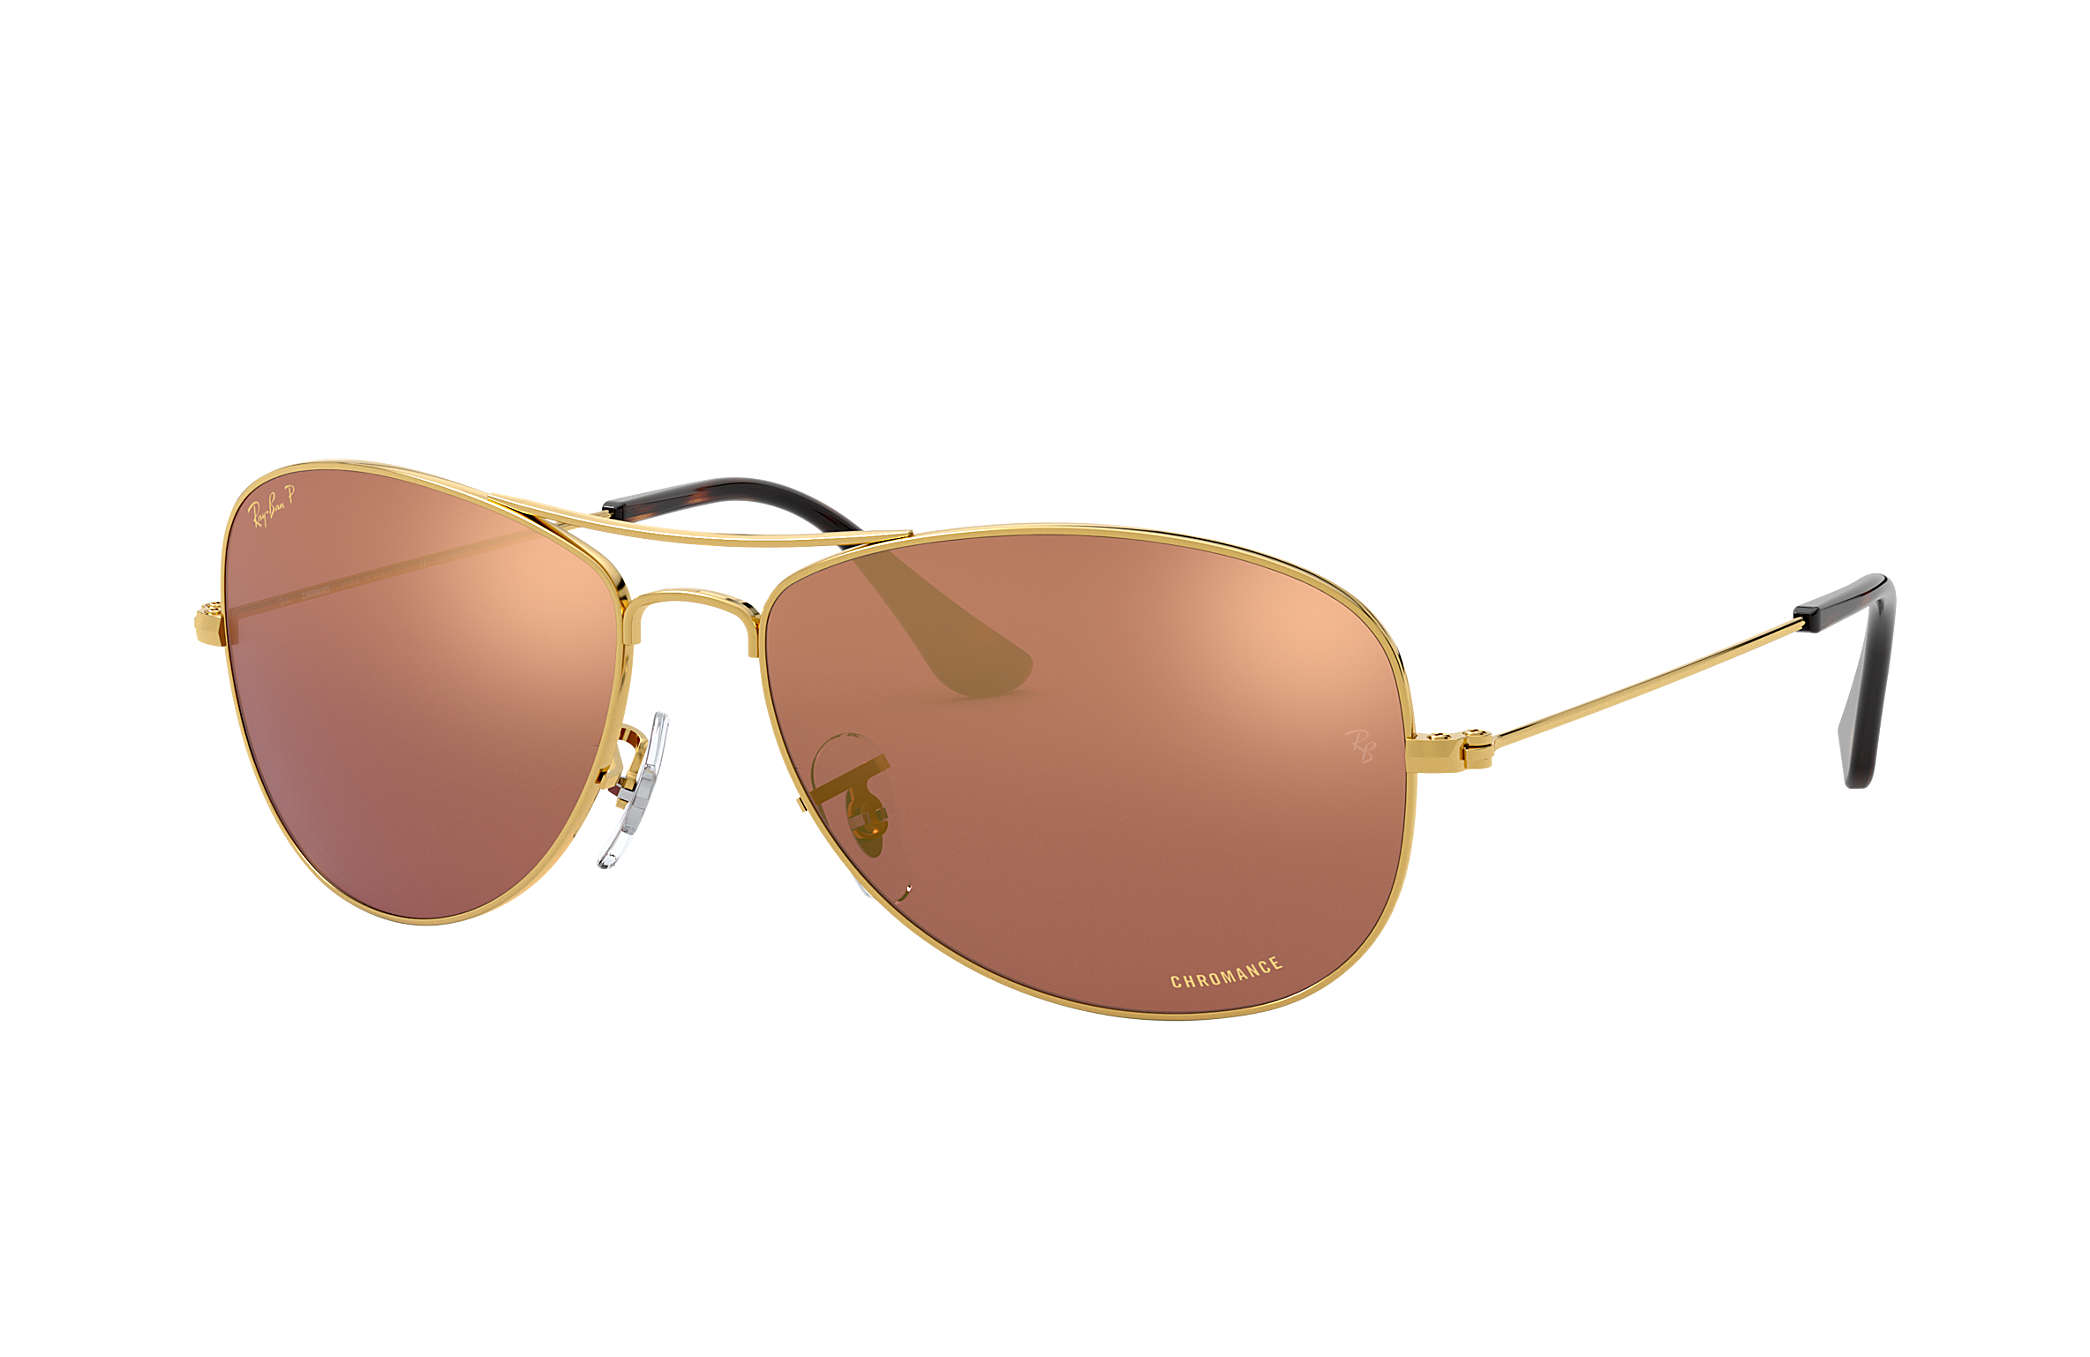 Ray-Ban RB3562 001/6B 59 mm/14 mm wJB2cFe6